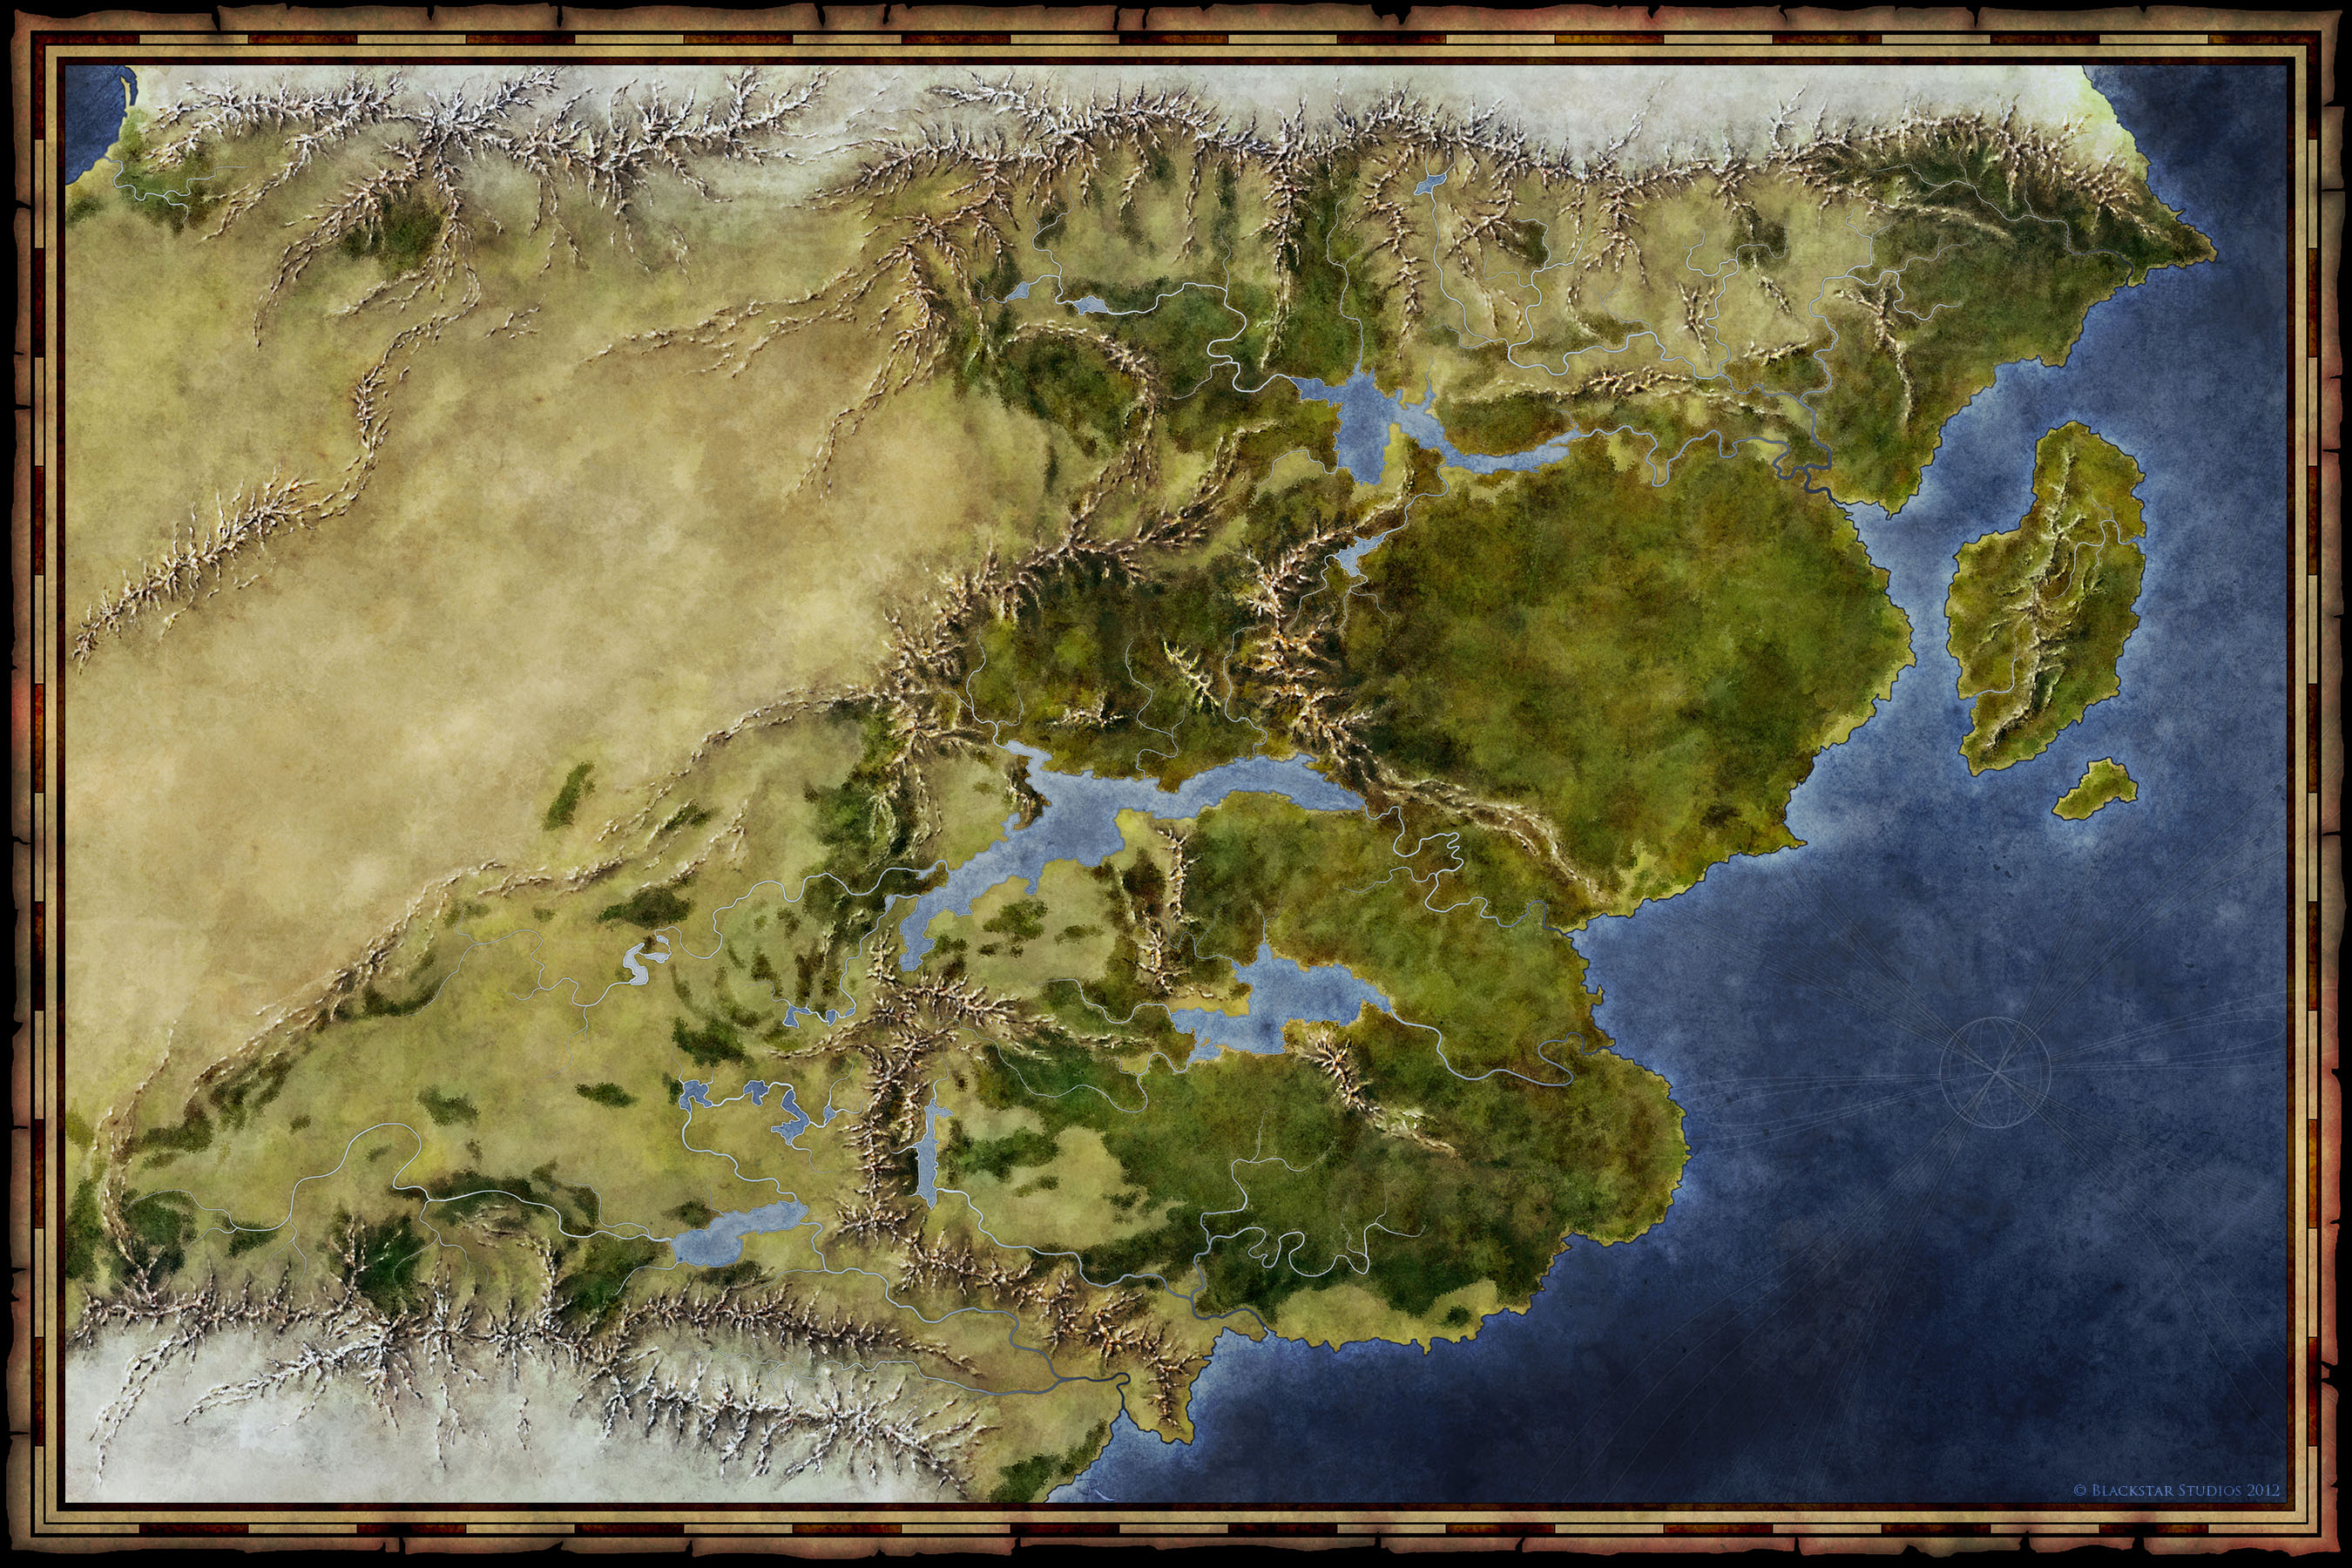 world map of the Saemmyr fantasy setting for Blackstar Studios